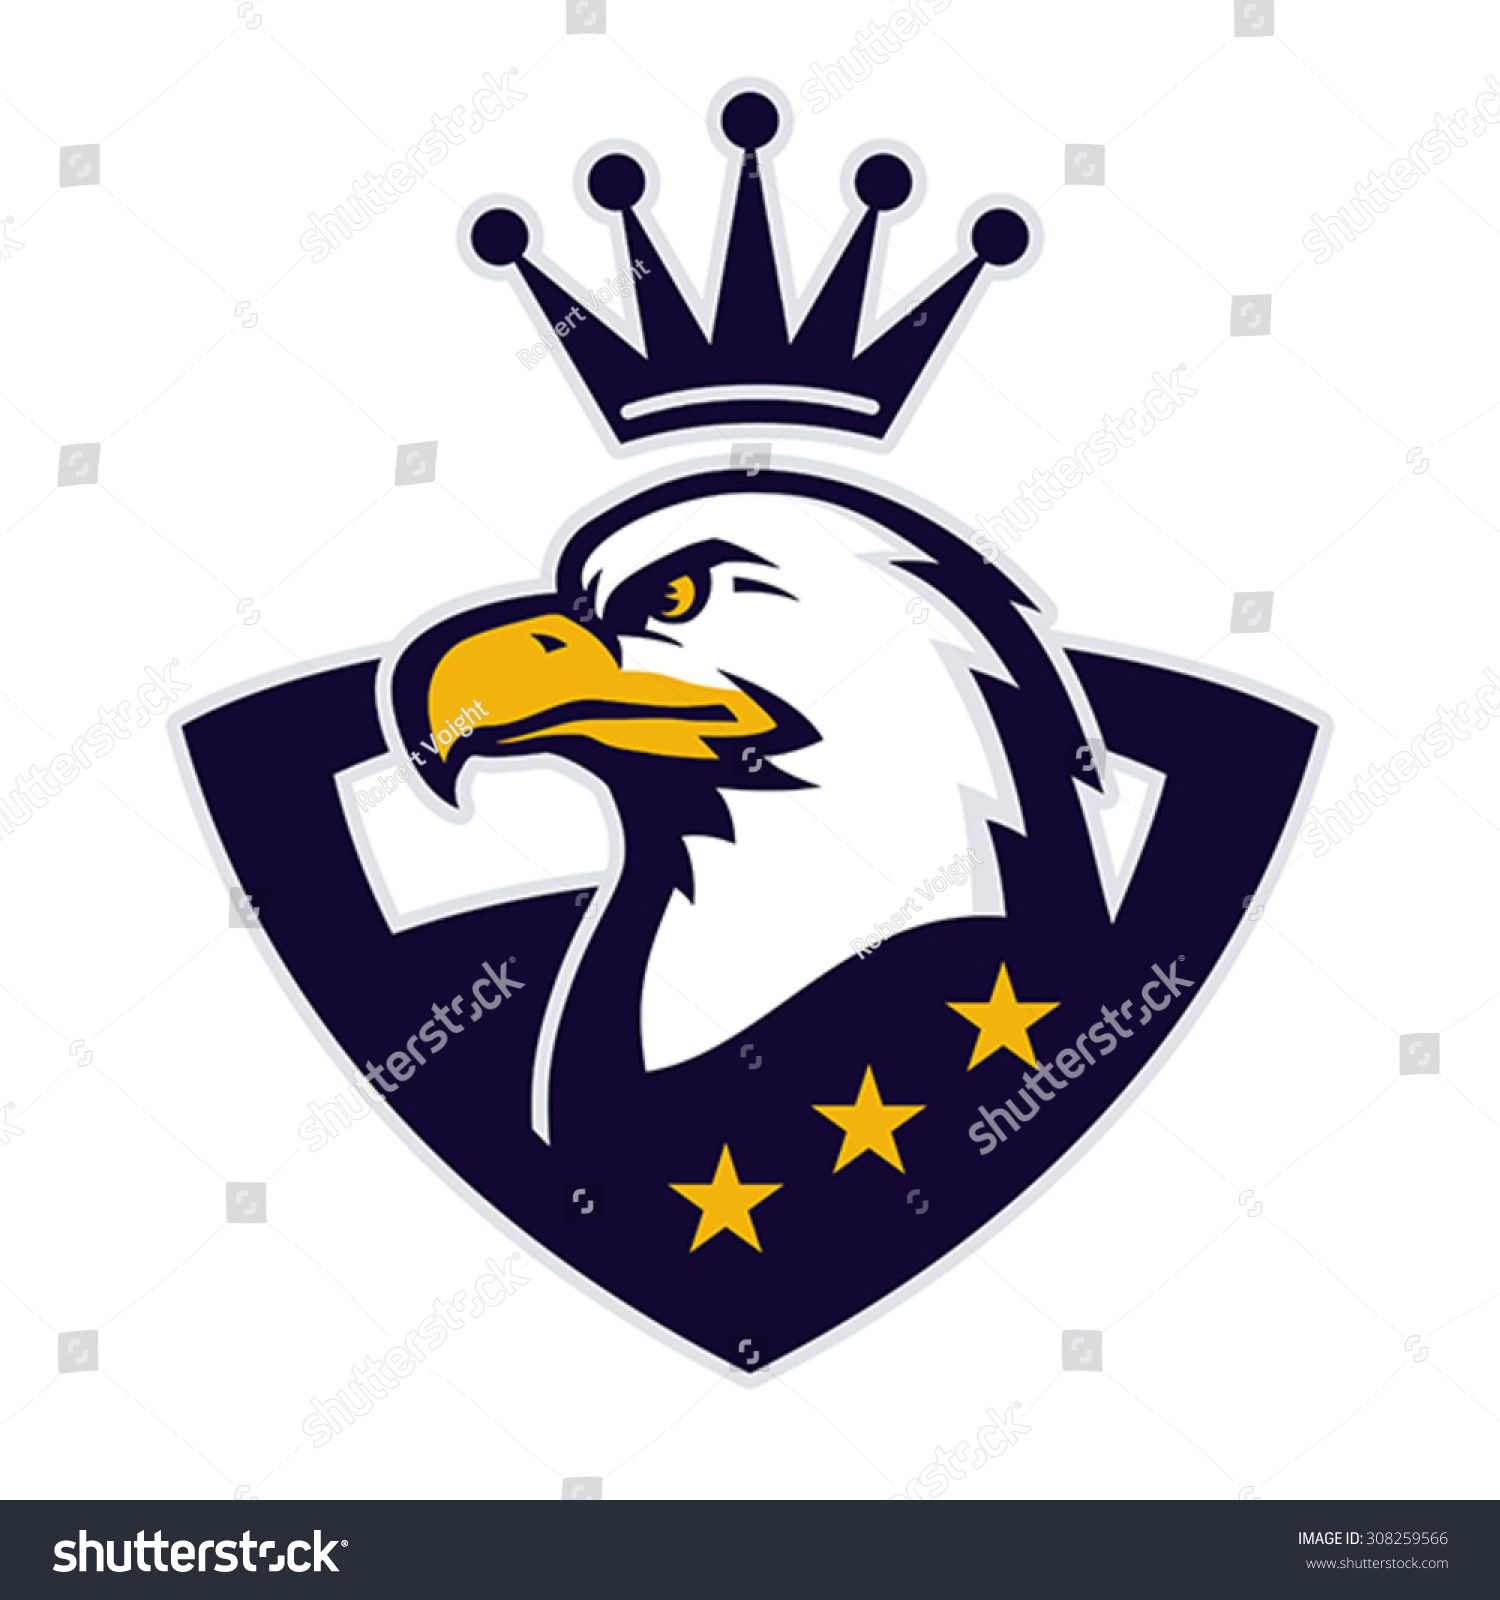 hight resolution of mascot with crowned american eagle logo design logodesign vector illustration eagle crown vector illustration by robert voight